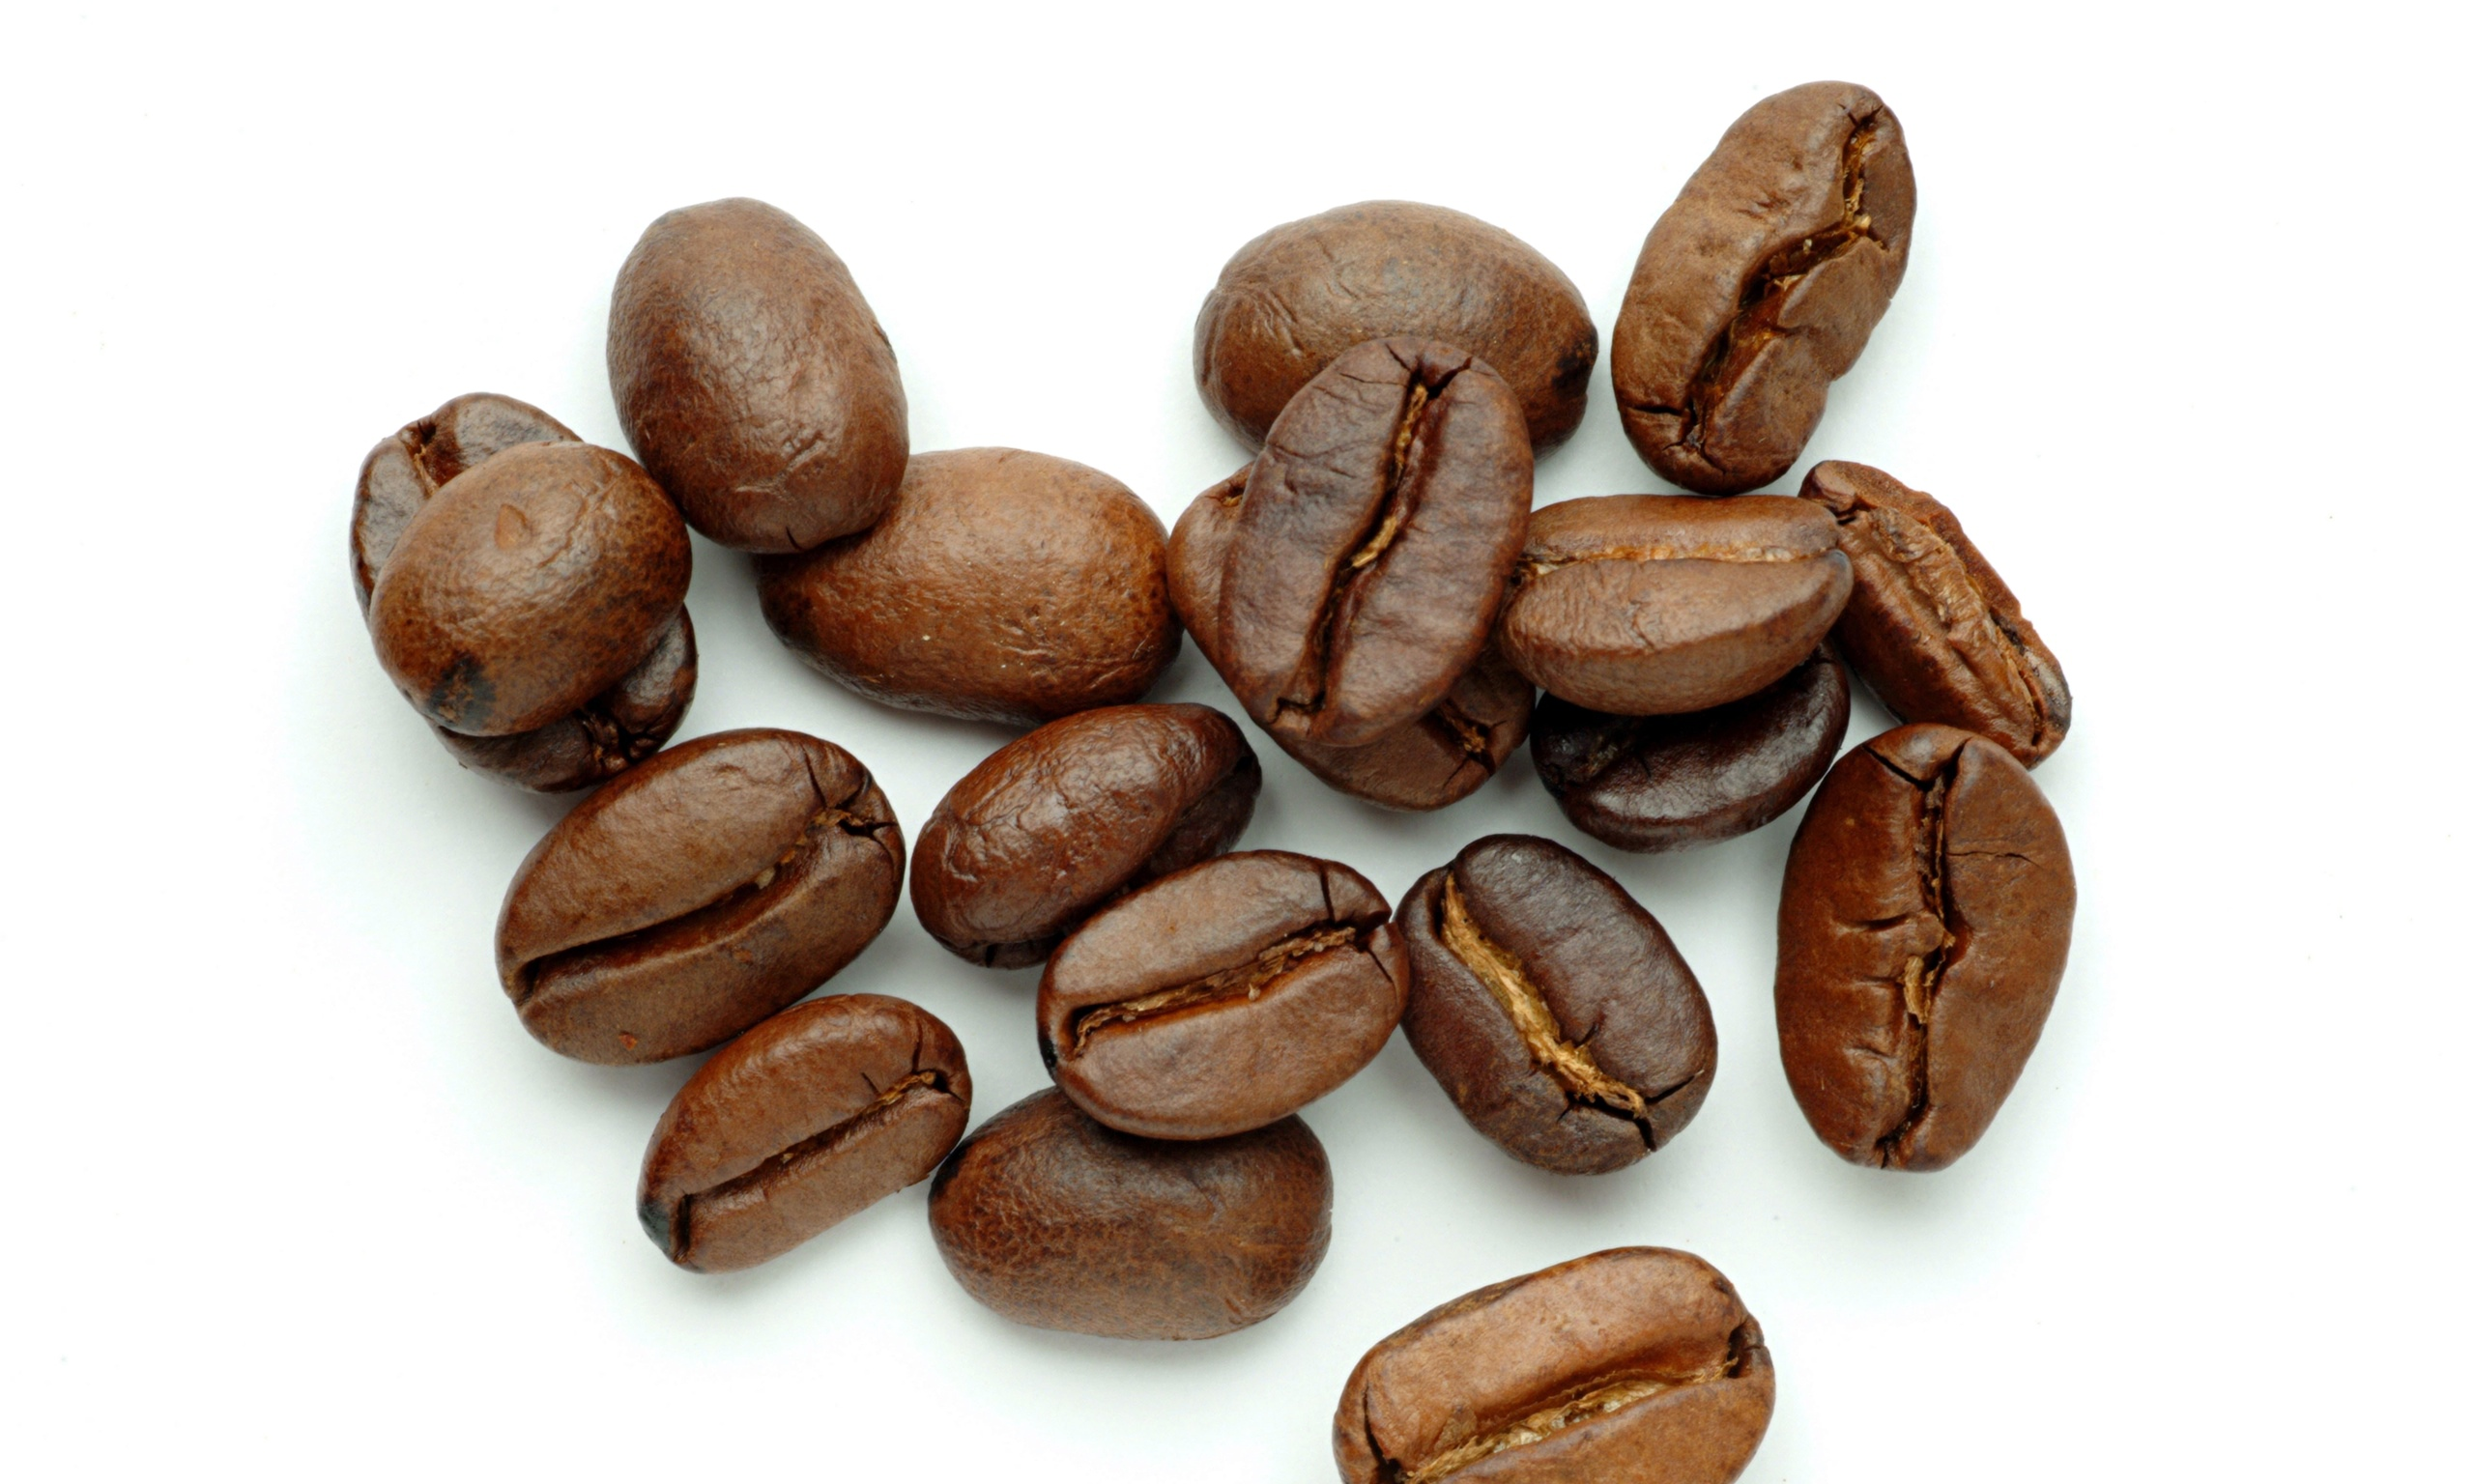 Roasted coffee beans  014